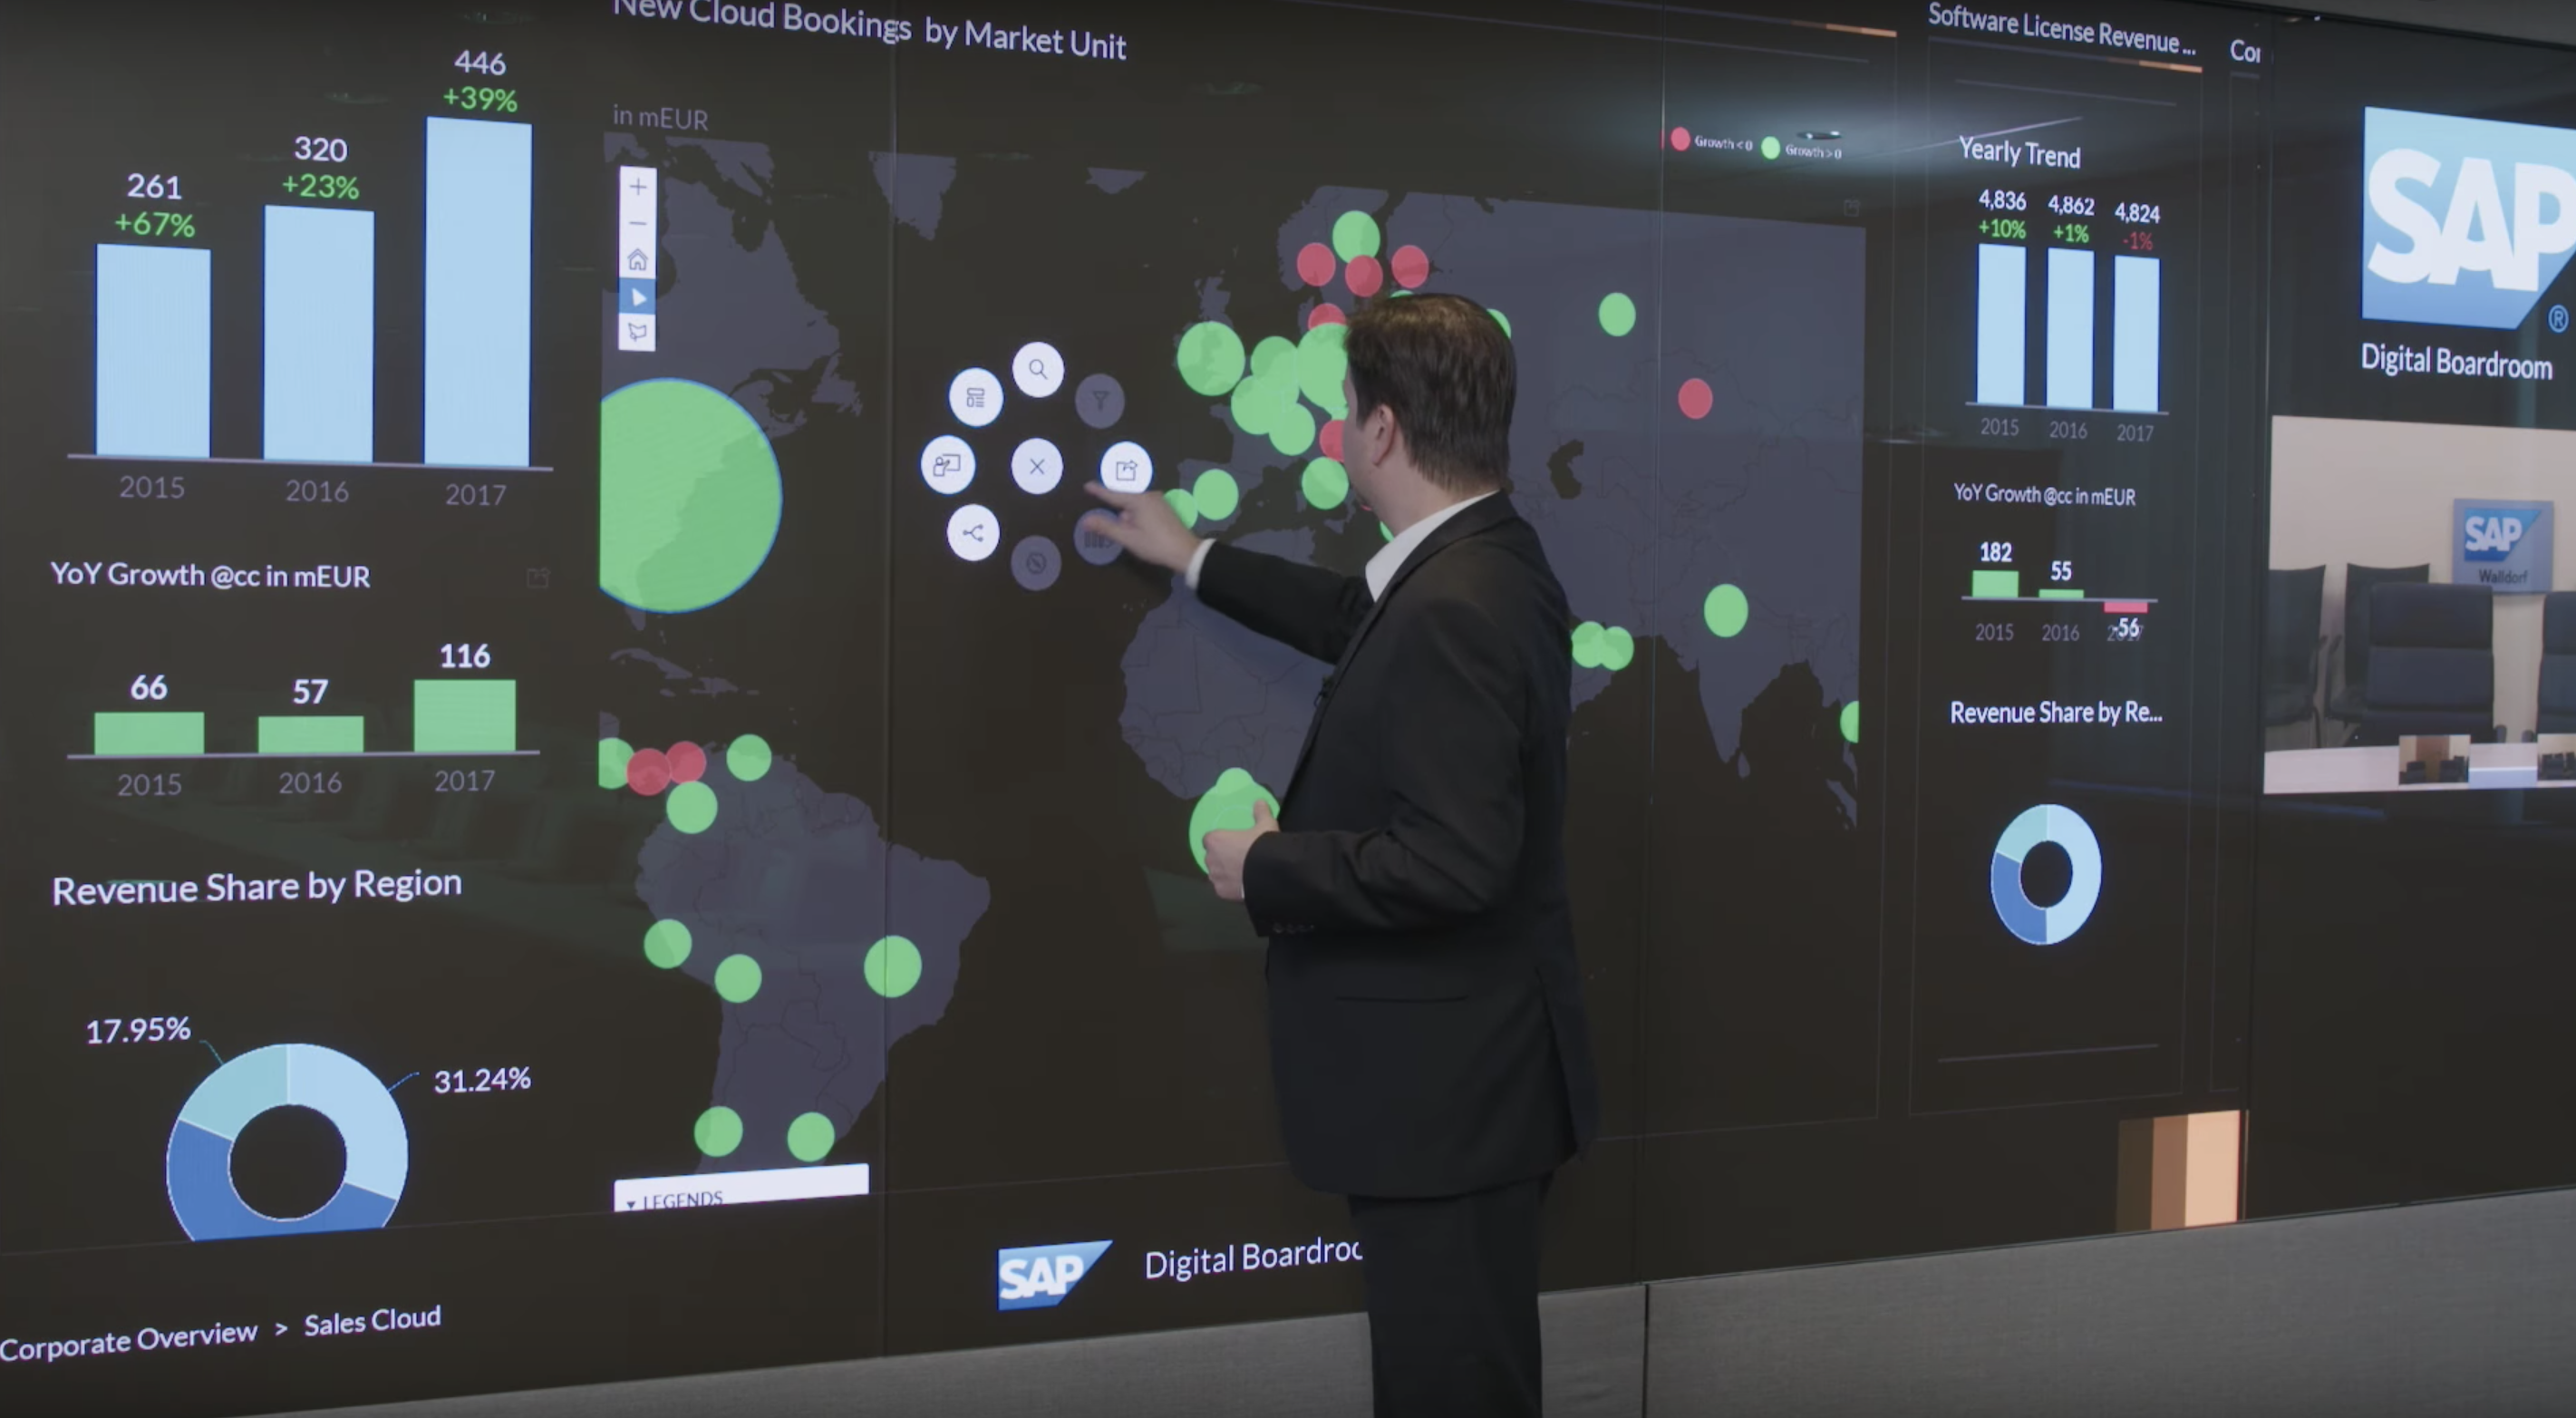 Video thumbnail image of man in digital boardroom with large touch screen wall panel.